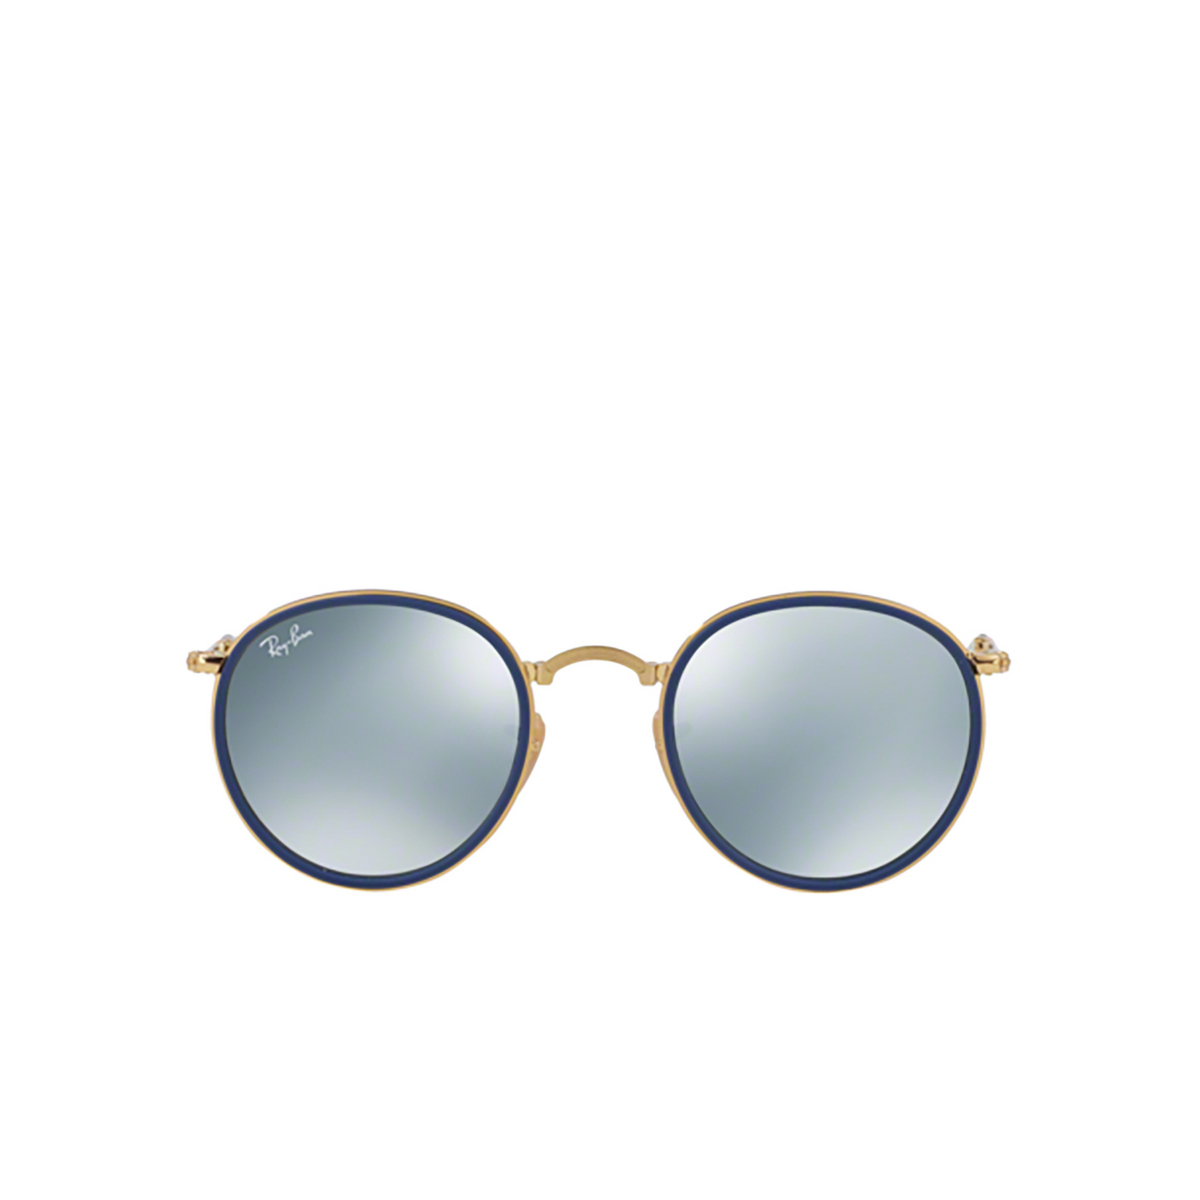 Ray-Ban® Round Sunglasses: Round Folding I RB3517 color Gold 001/30 - 1/3.